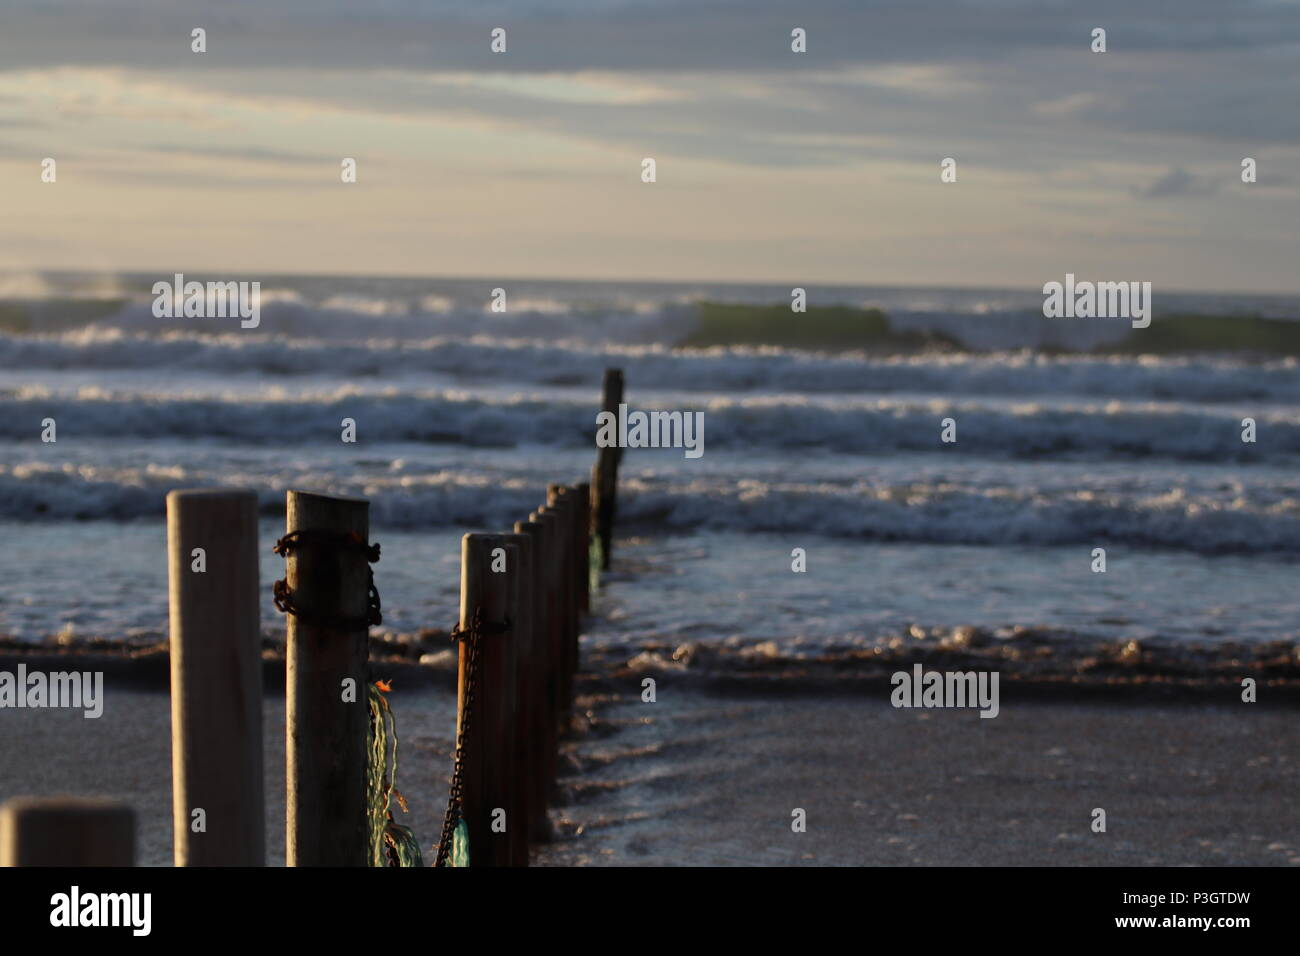 'The Sticks' Portstewart Strand - Stock Image